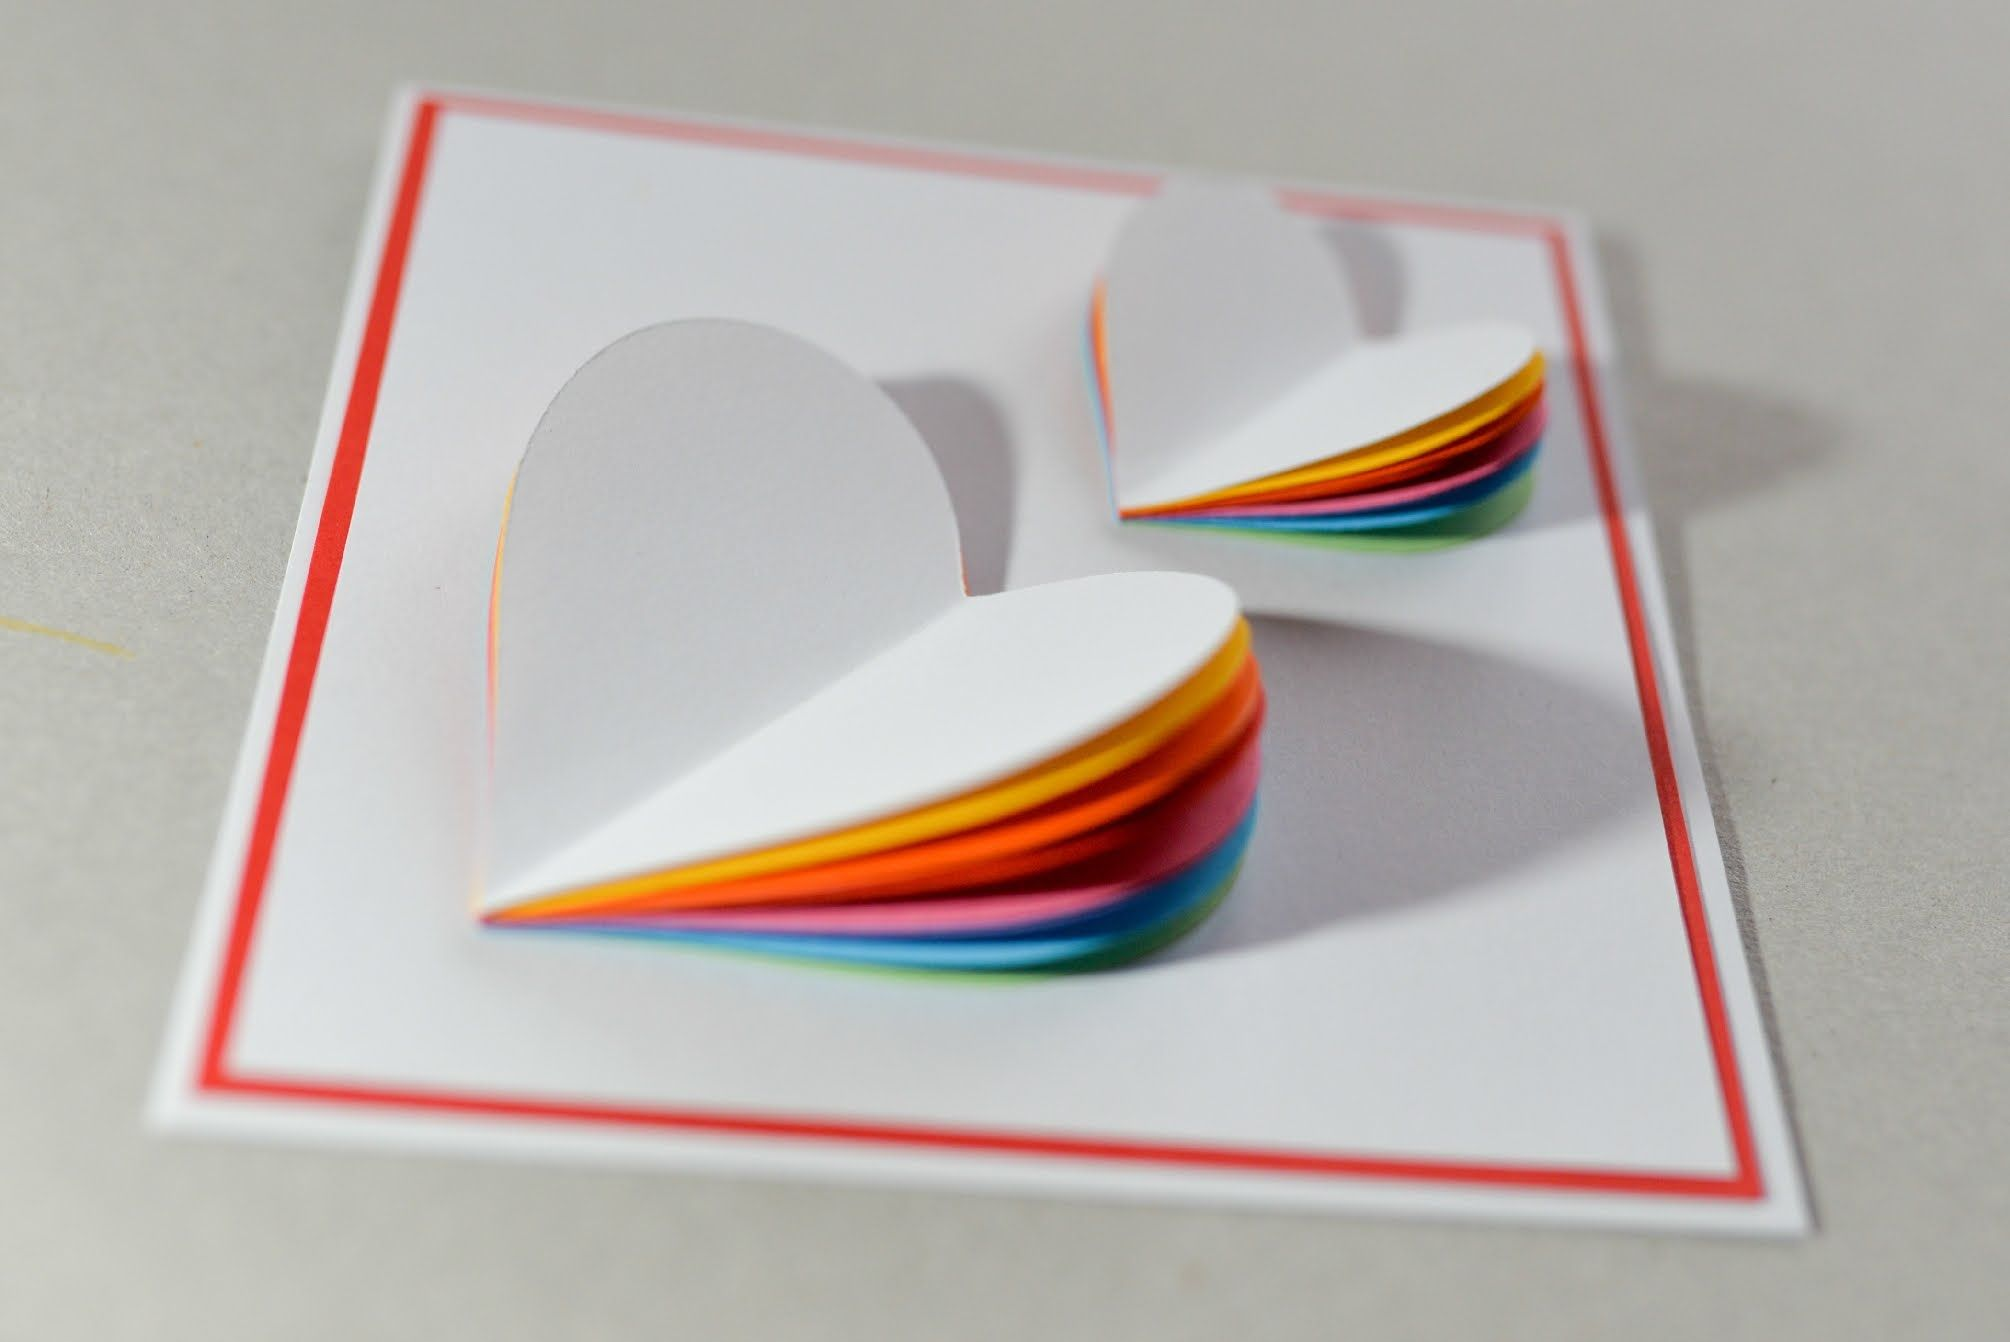 How to make valentines day card rainbow heart greeting card pop up card twin hearts learn how to make a popup heart greeting card ezycraft kristyandbryce Images